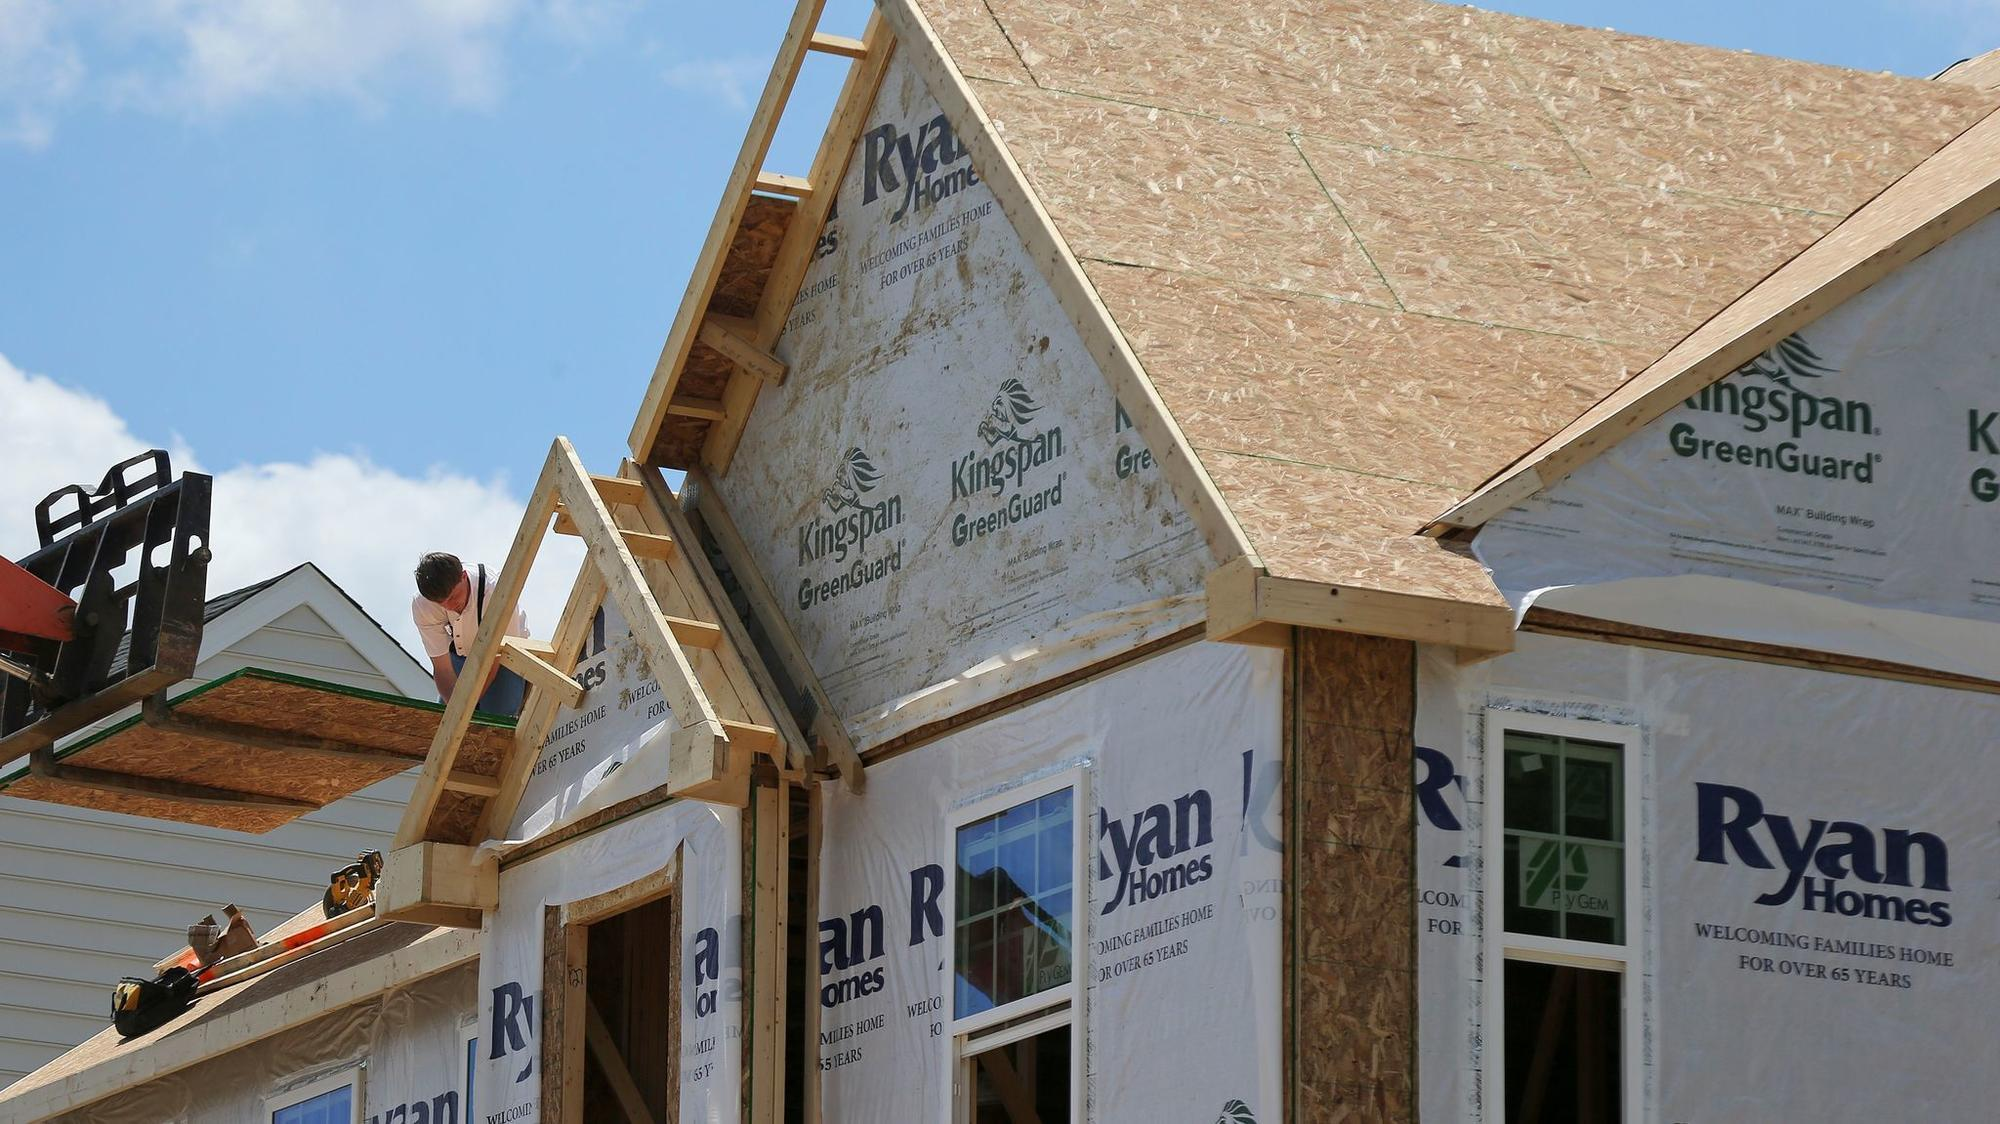 U.S. home prices surge, outpacing wage growth